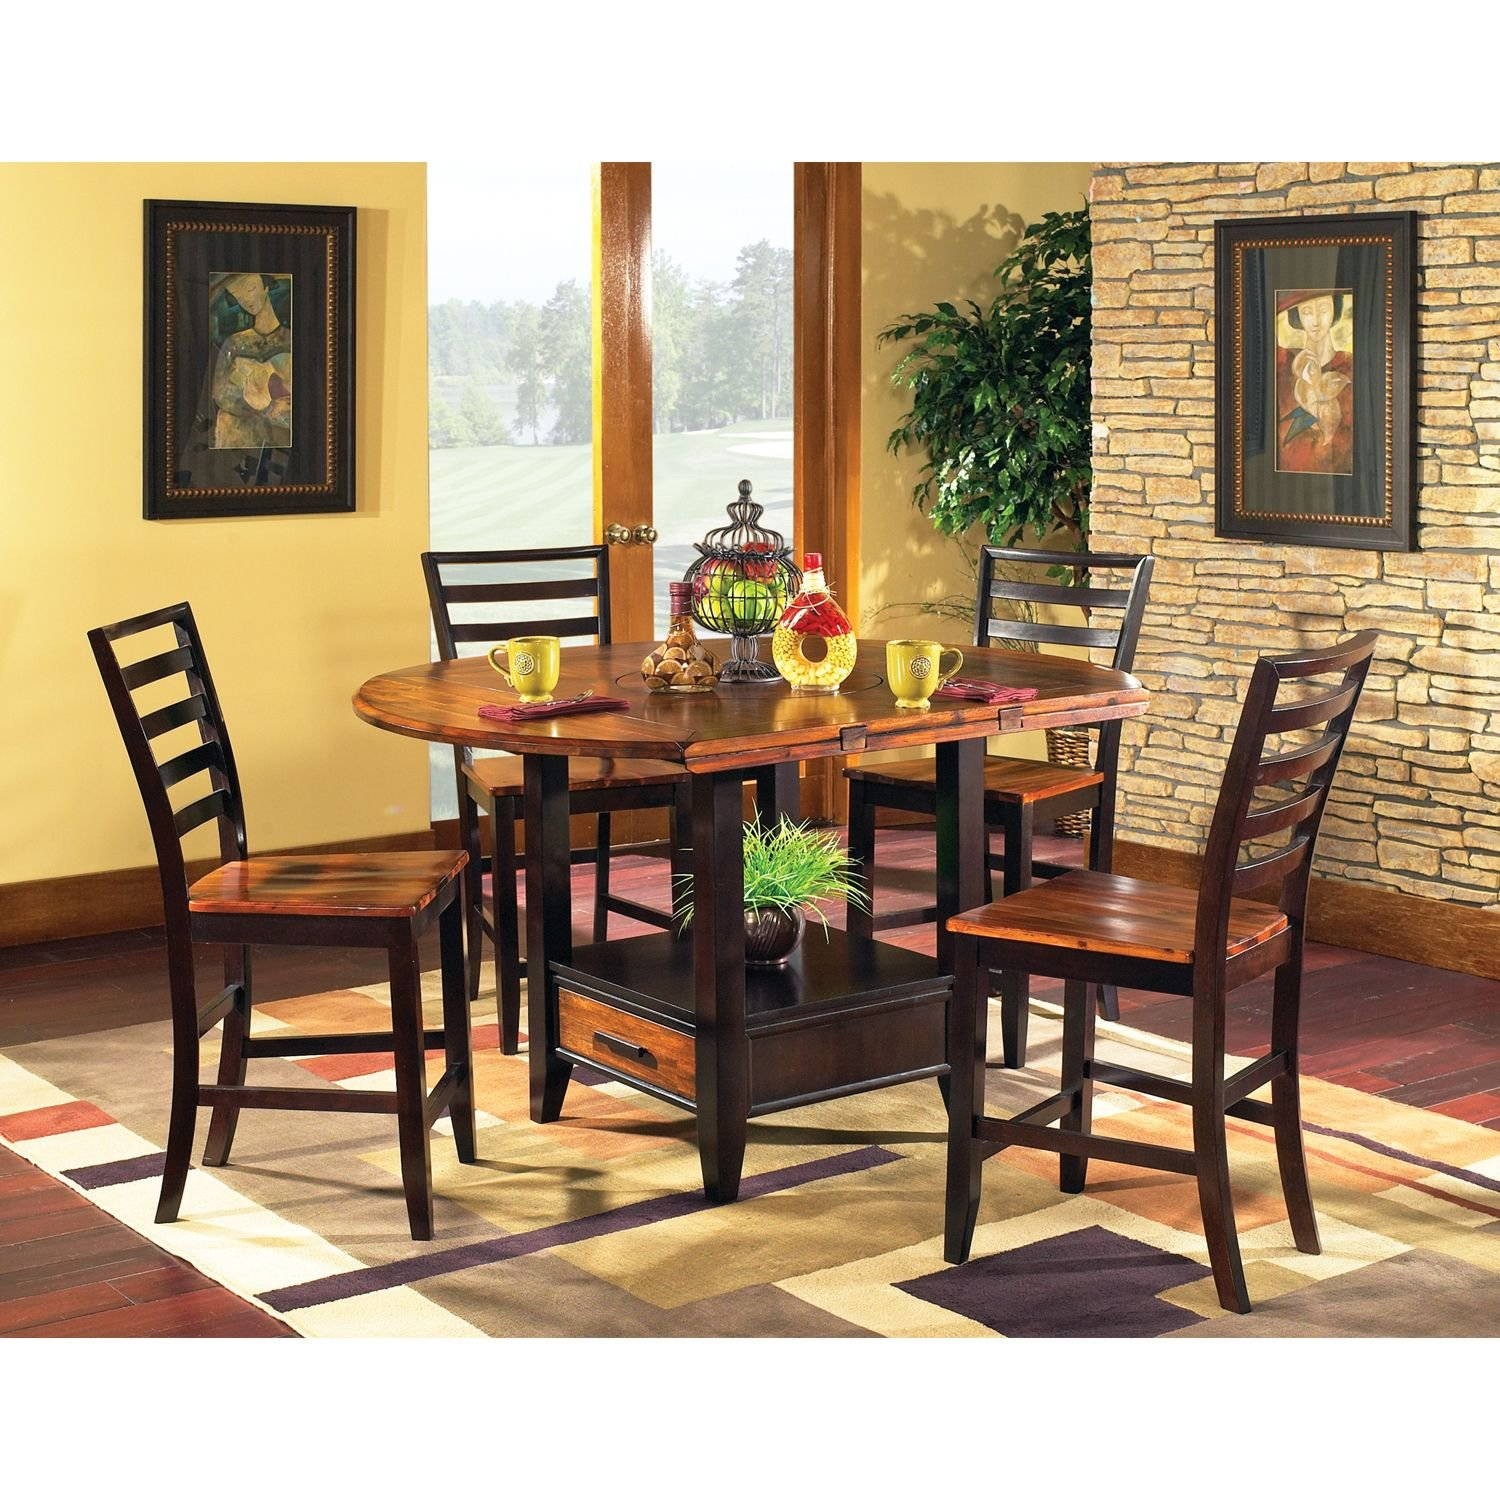 Amazon.com Counter Height Dining Set by Lauren Wells Pierson 5-Piece Features Drop Leaf Design Built-in Lazy Susan and Under Table Storage Oak Finish ...  sc 1 st  Amazon.com & Amazon.com: Counter Height Dining Set by Lauren Wells Pierson 5 ...